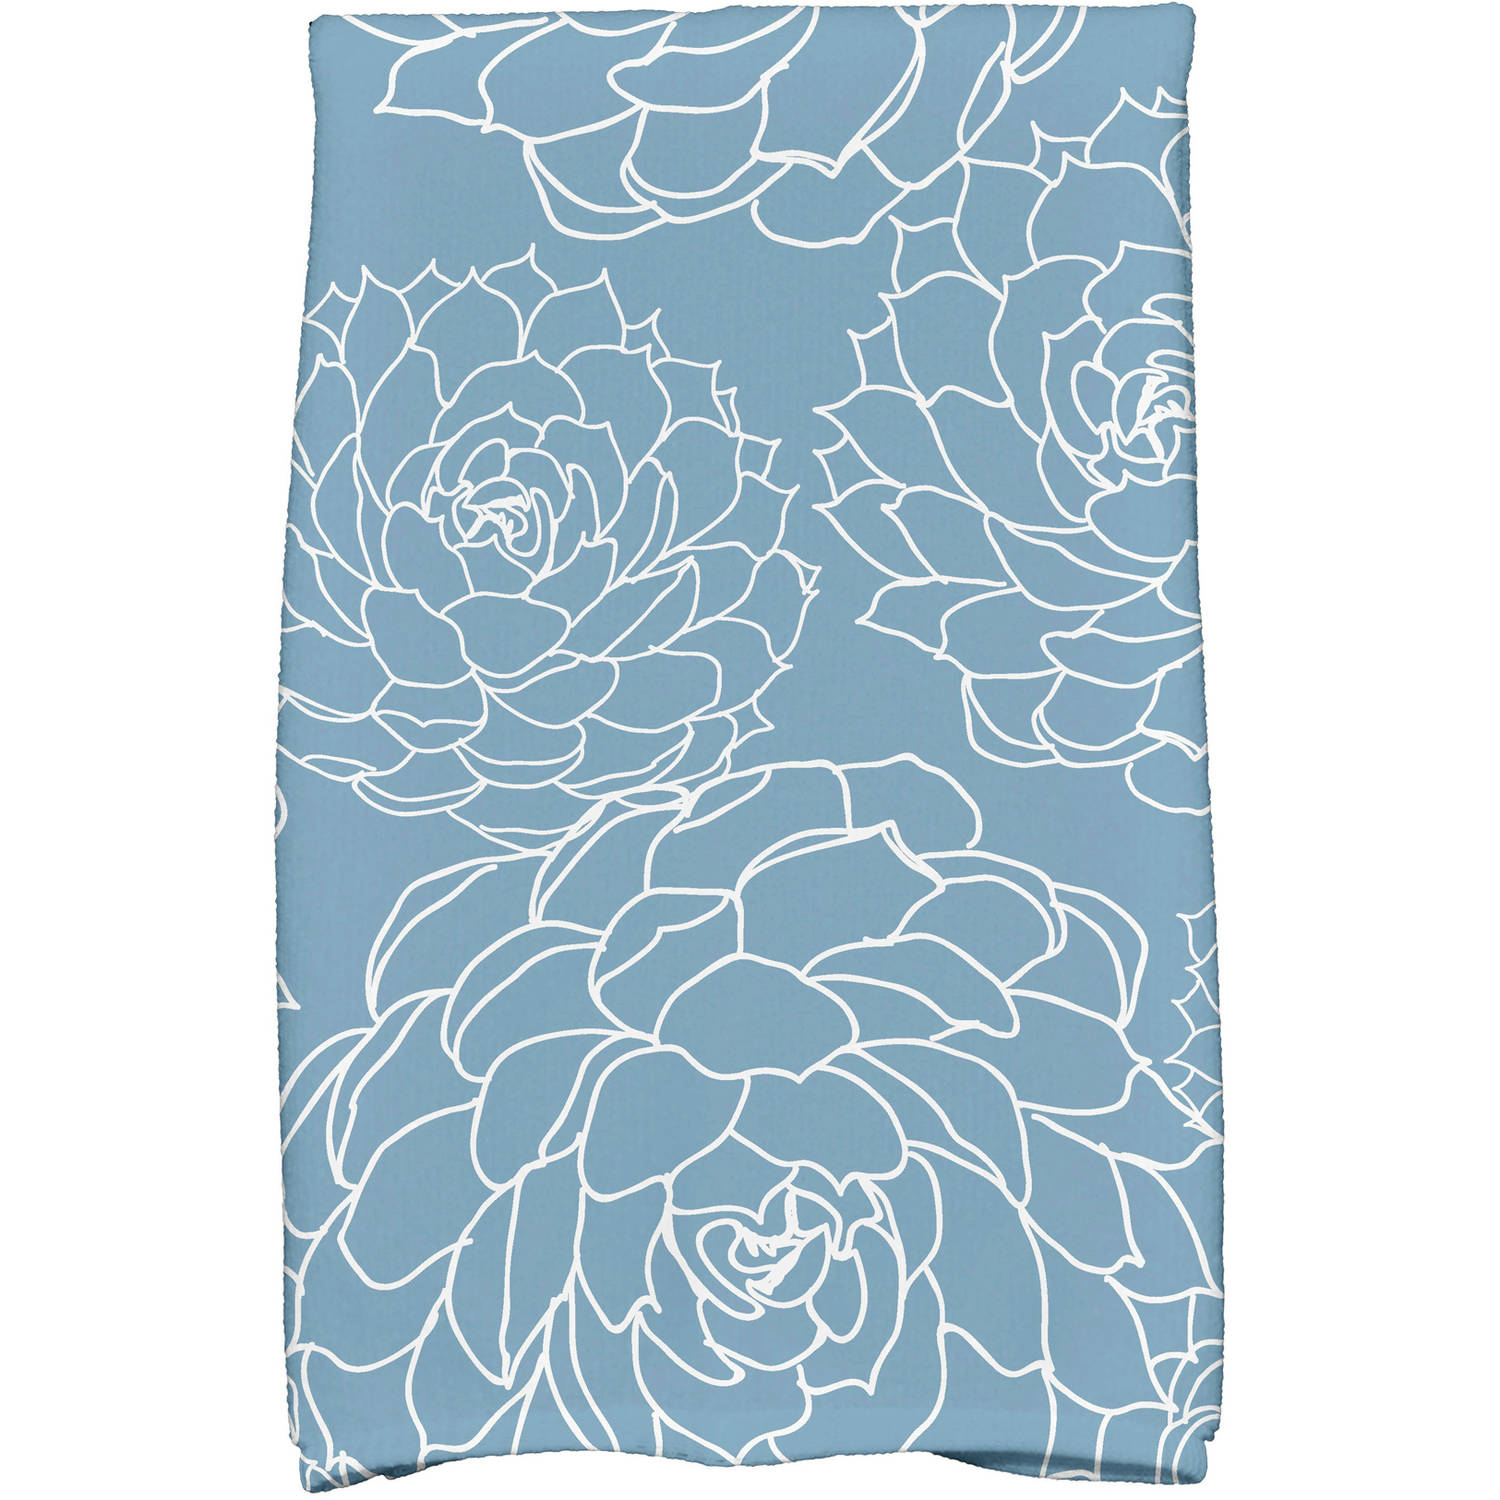 "Simply Daisy 16"" x 25"" Olena Floral Print Kitchen Towels by E By Design"